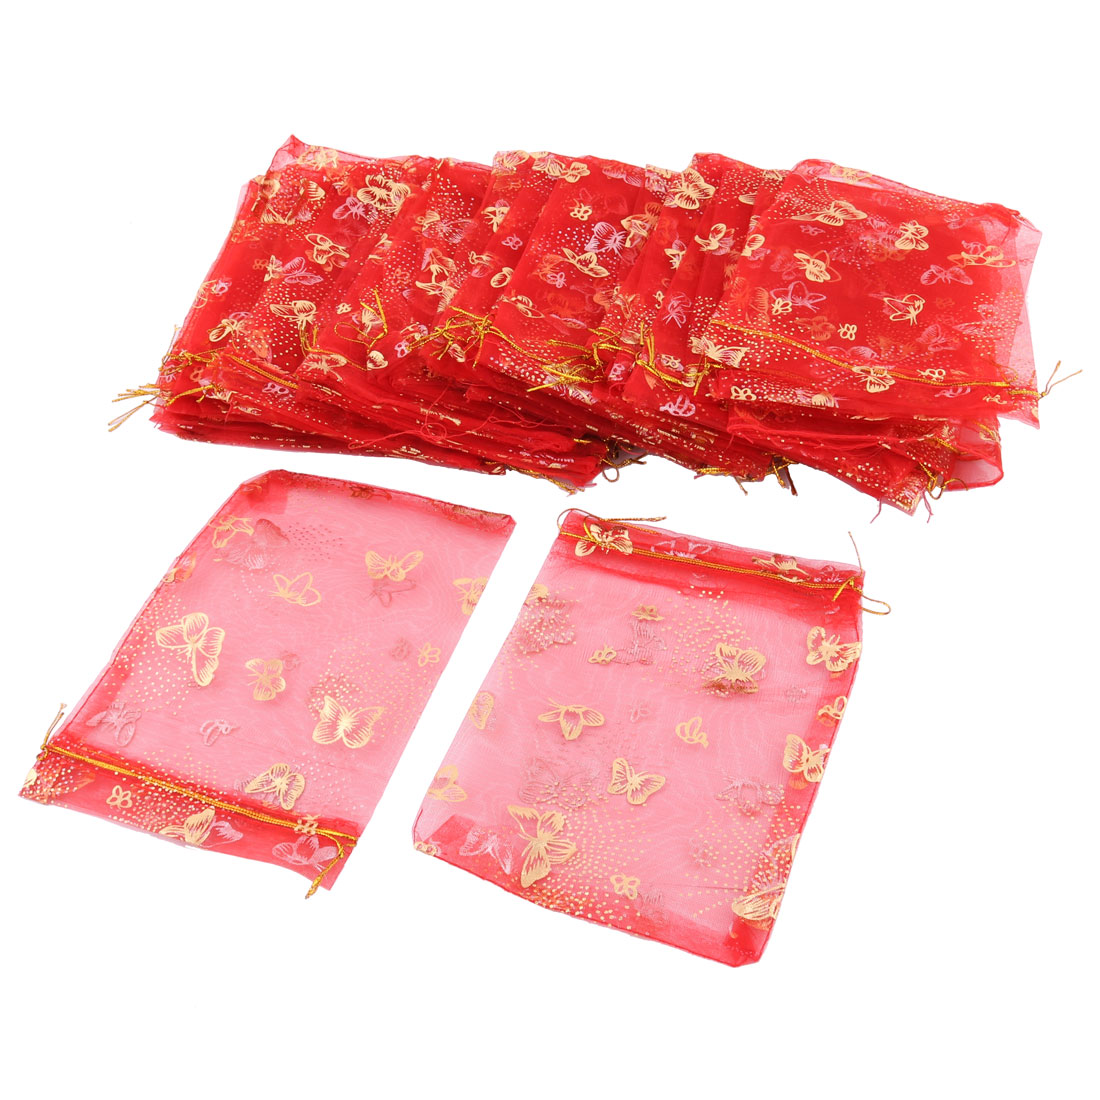 Organza Butterfly Pattern Jewelry Candy Pouch Wedding Party Gift Bag Red 50 Pcs